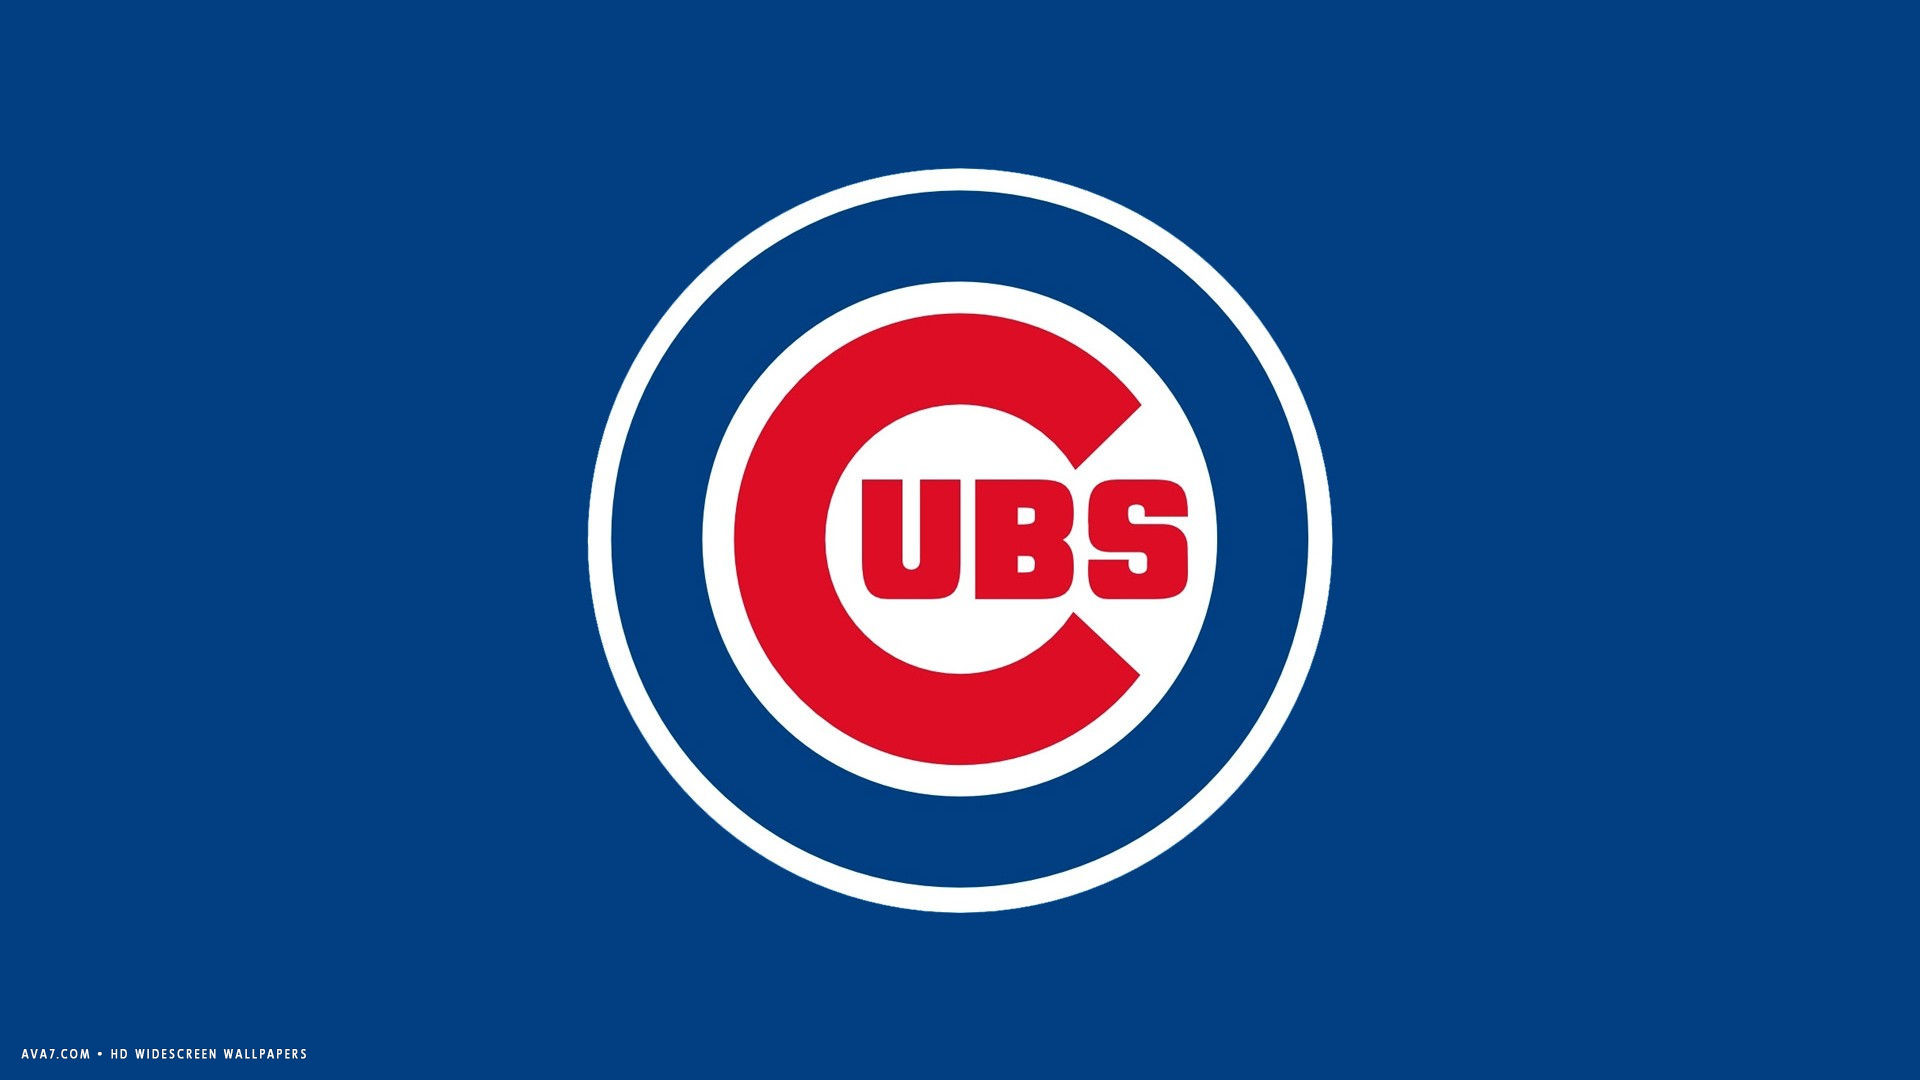 1920x1080 chicago cubs mlb baseball team hd widescreen wallpaper